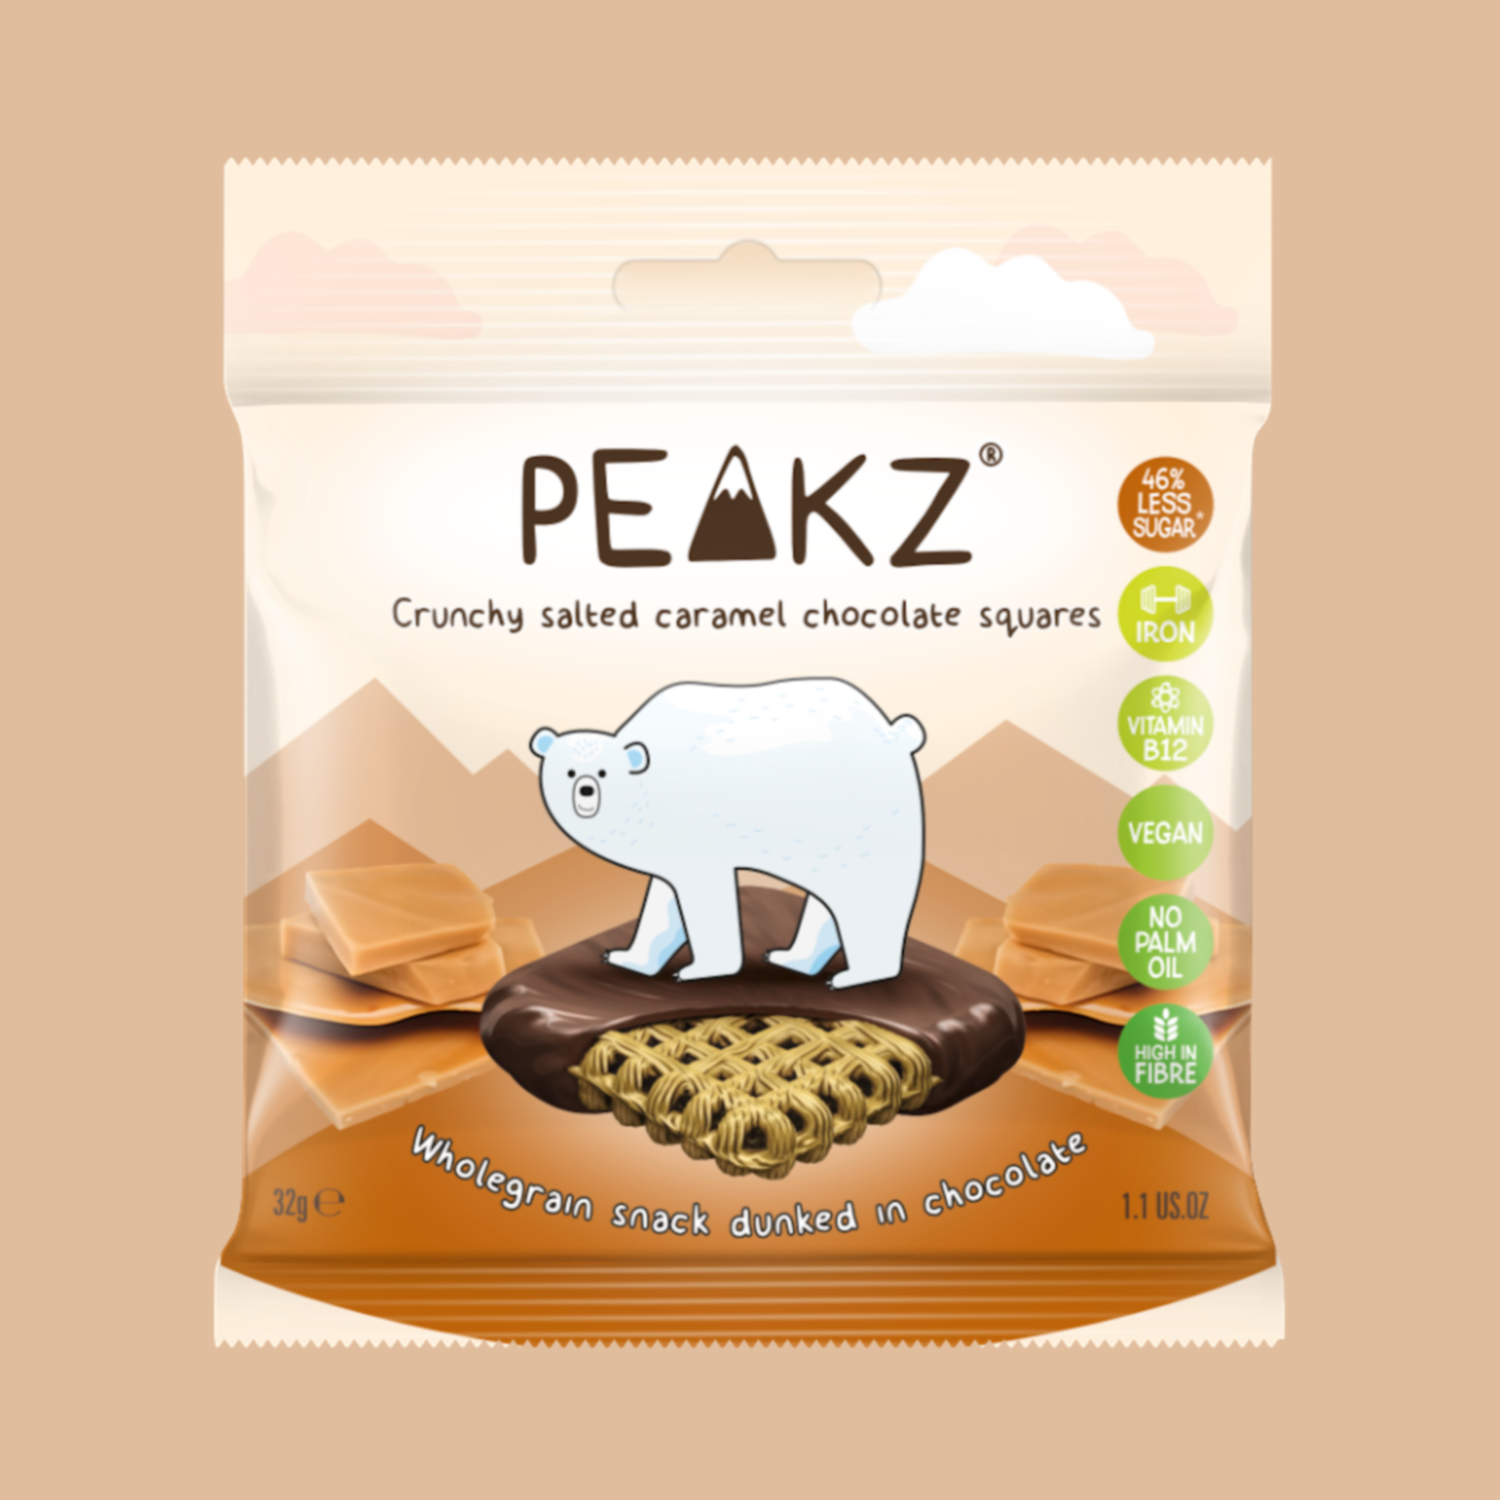 Peakz Chocolate Squares - Salted Caramel Flavour